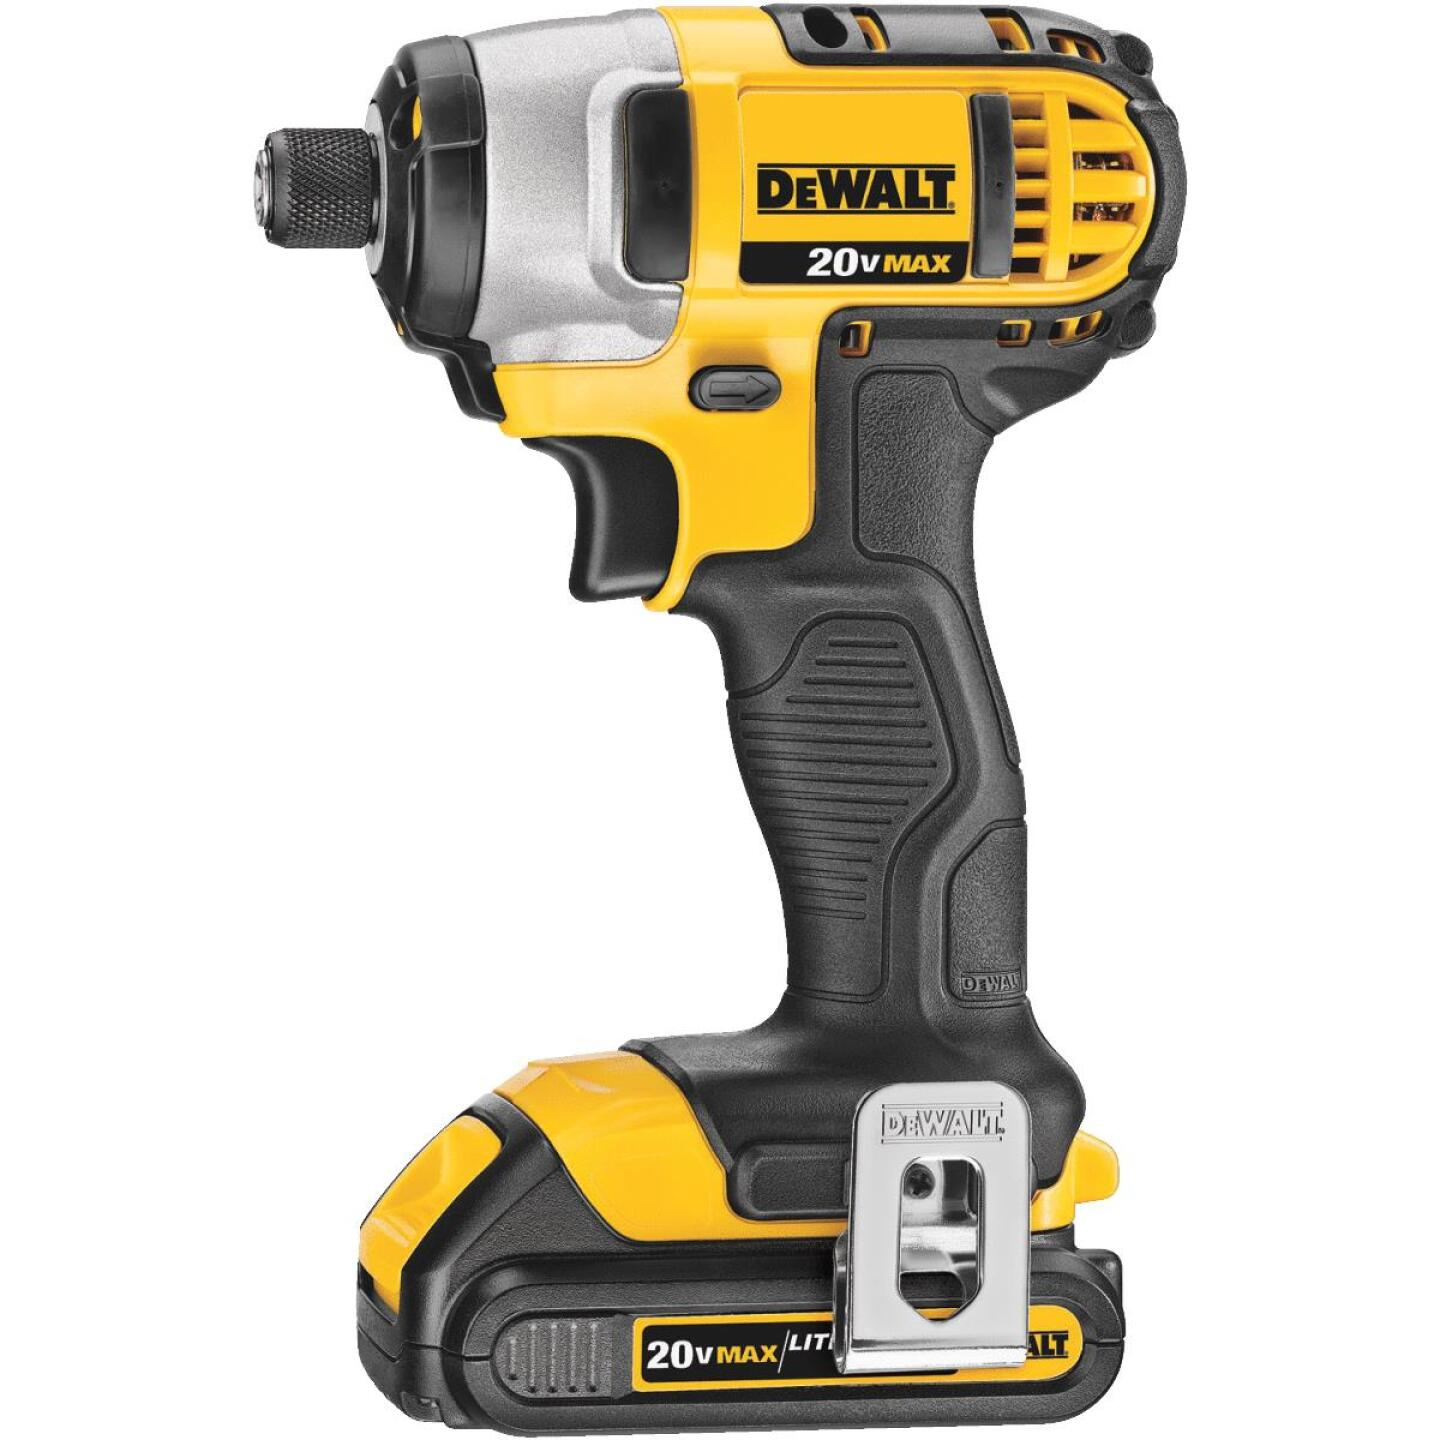 DeWalt 20 Volt MAX Lithium-Ion 1/4 In. Hex Cordless Impact Driver Kit (2-Battery) Image 2